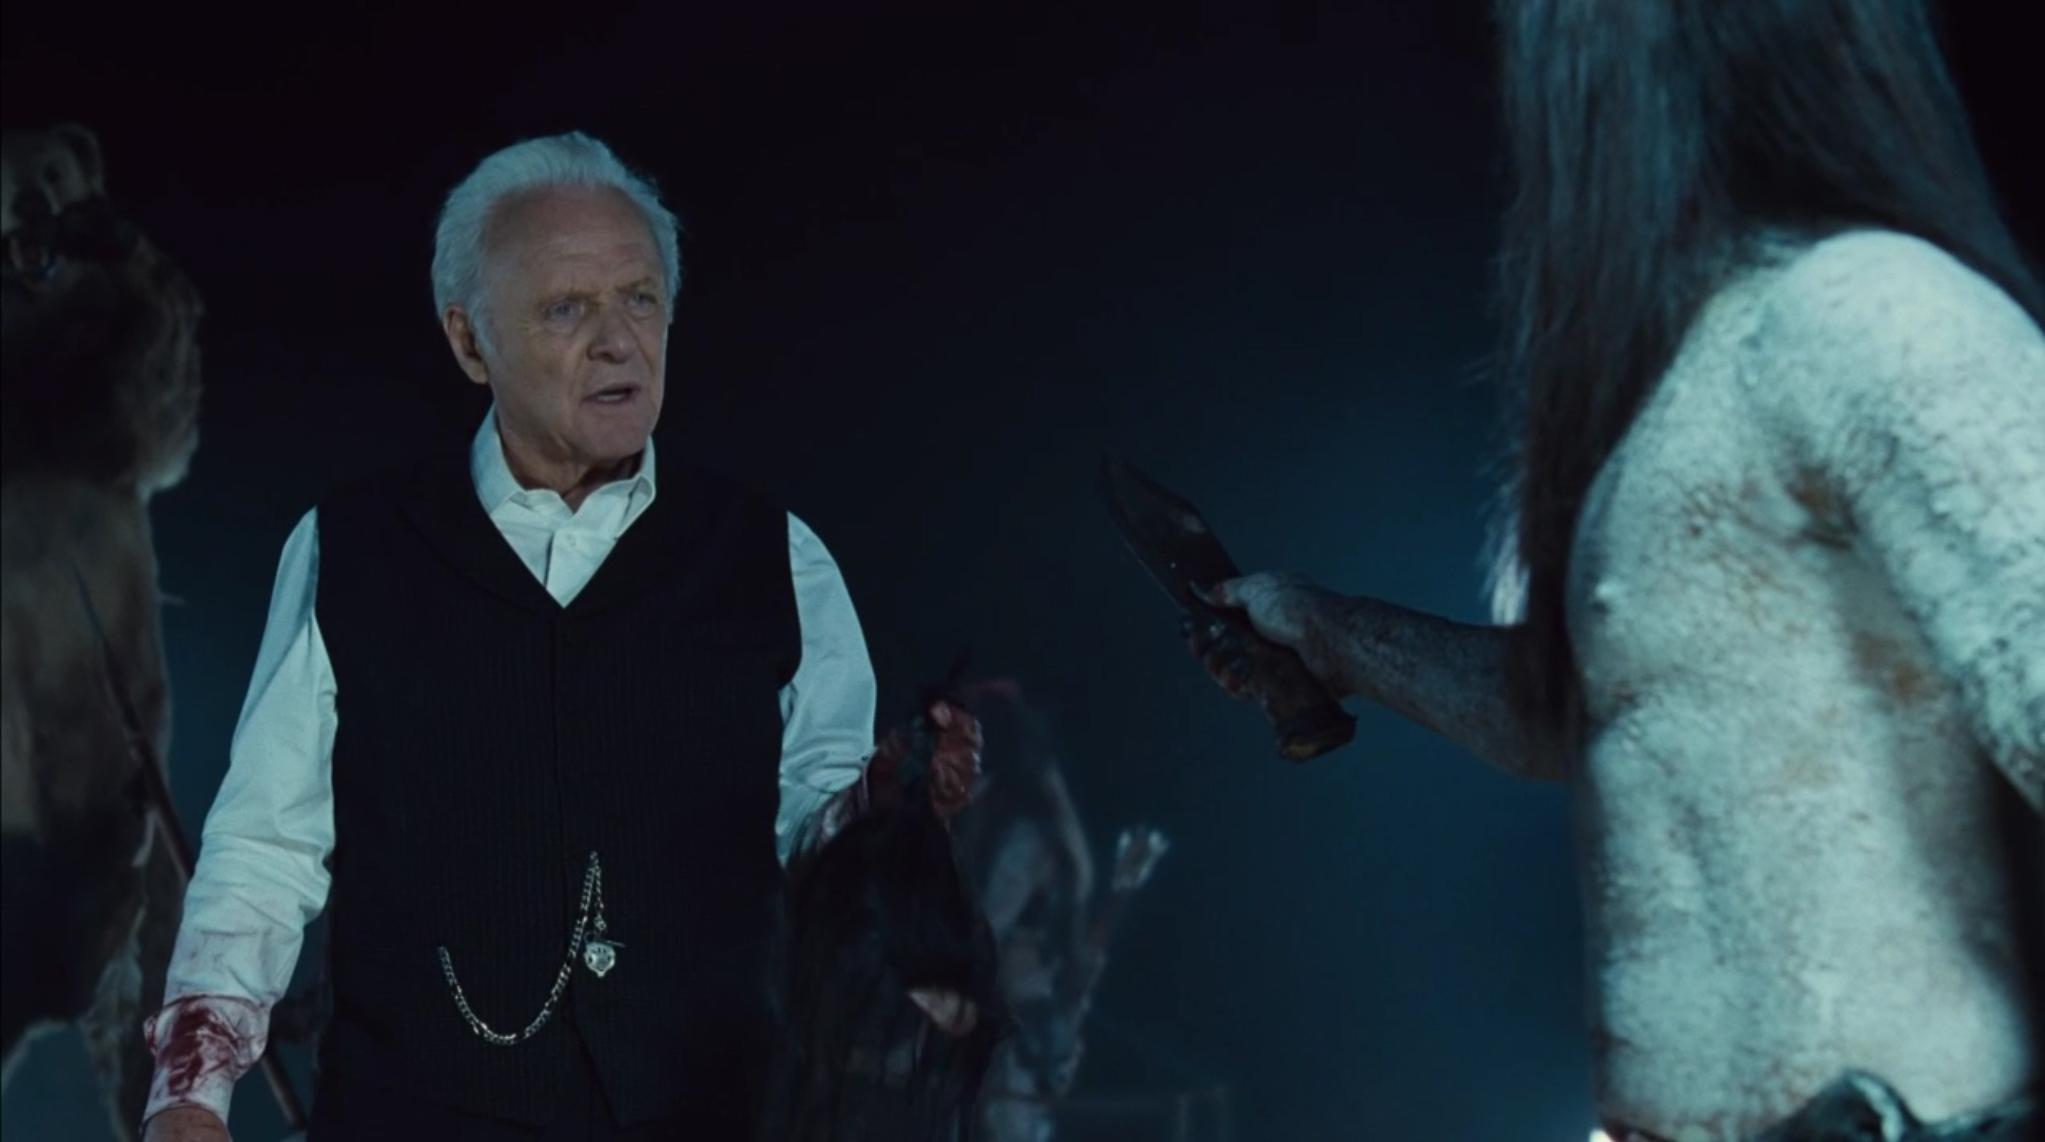 Serien-Review: Westworld, Staffel 2, Episode 8